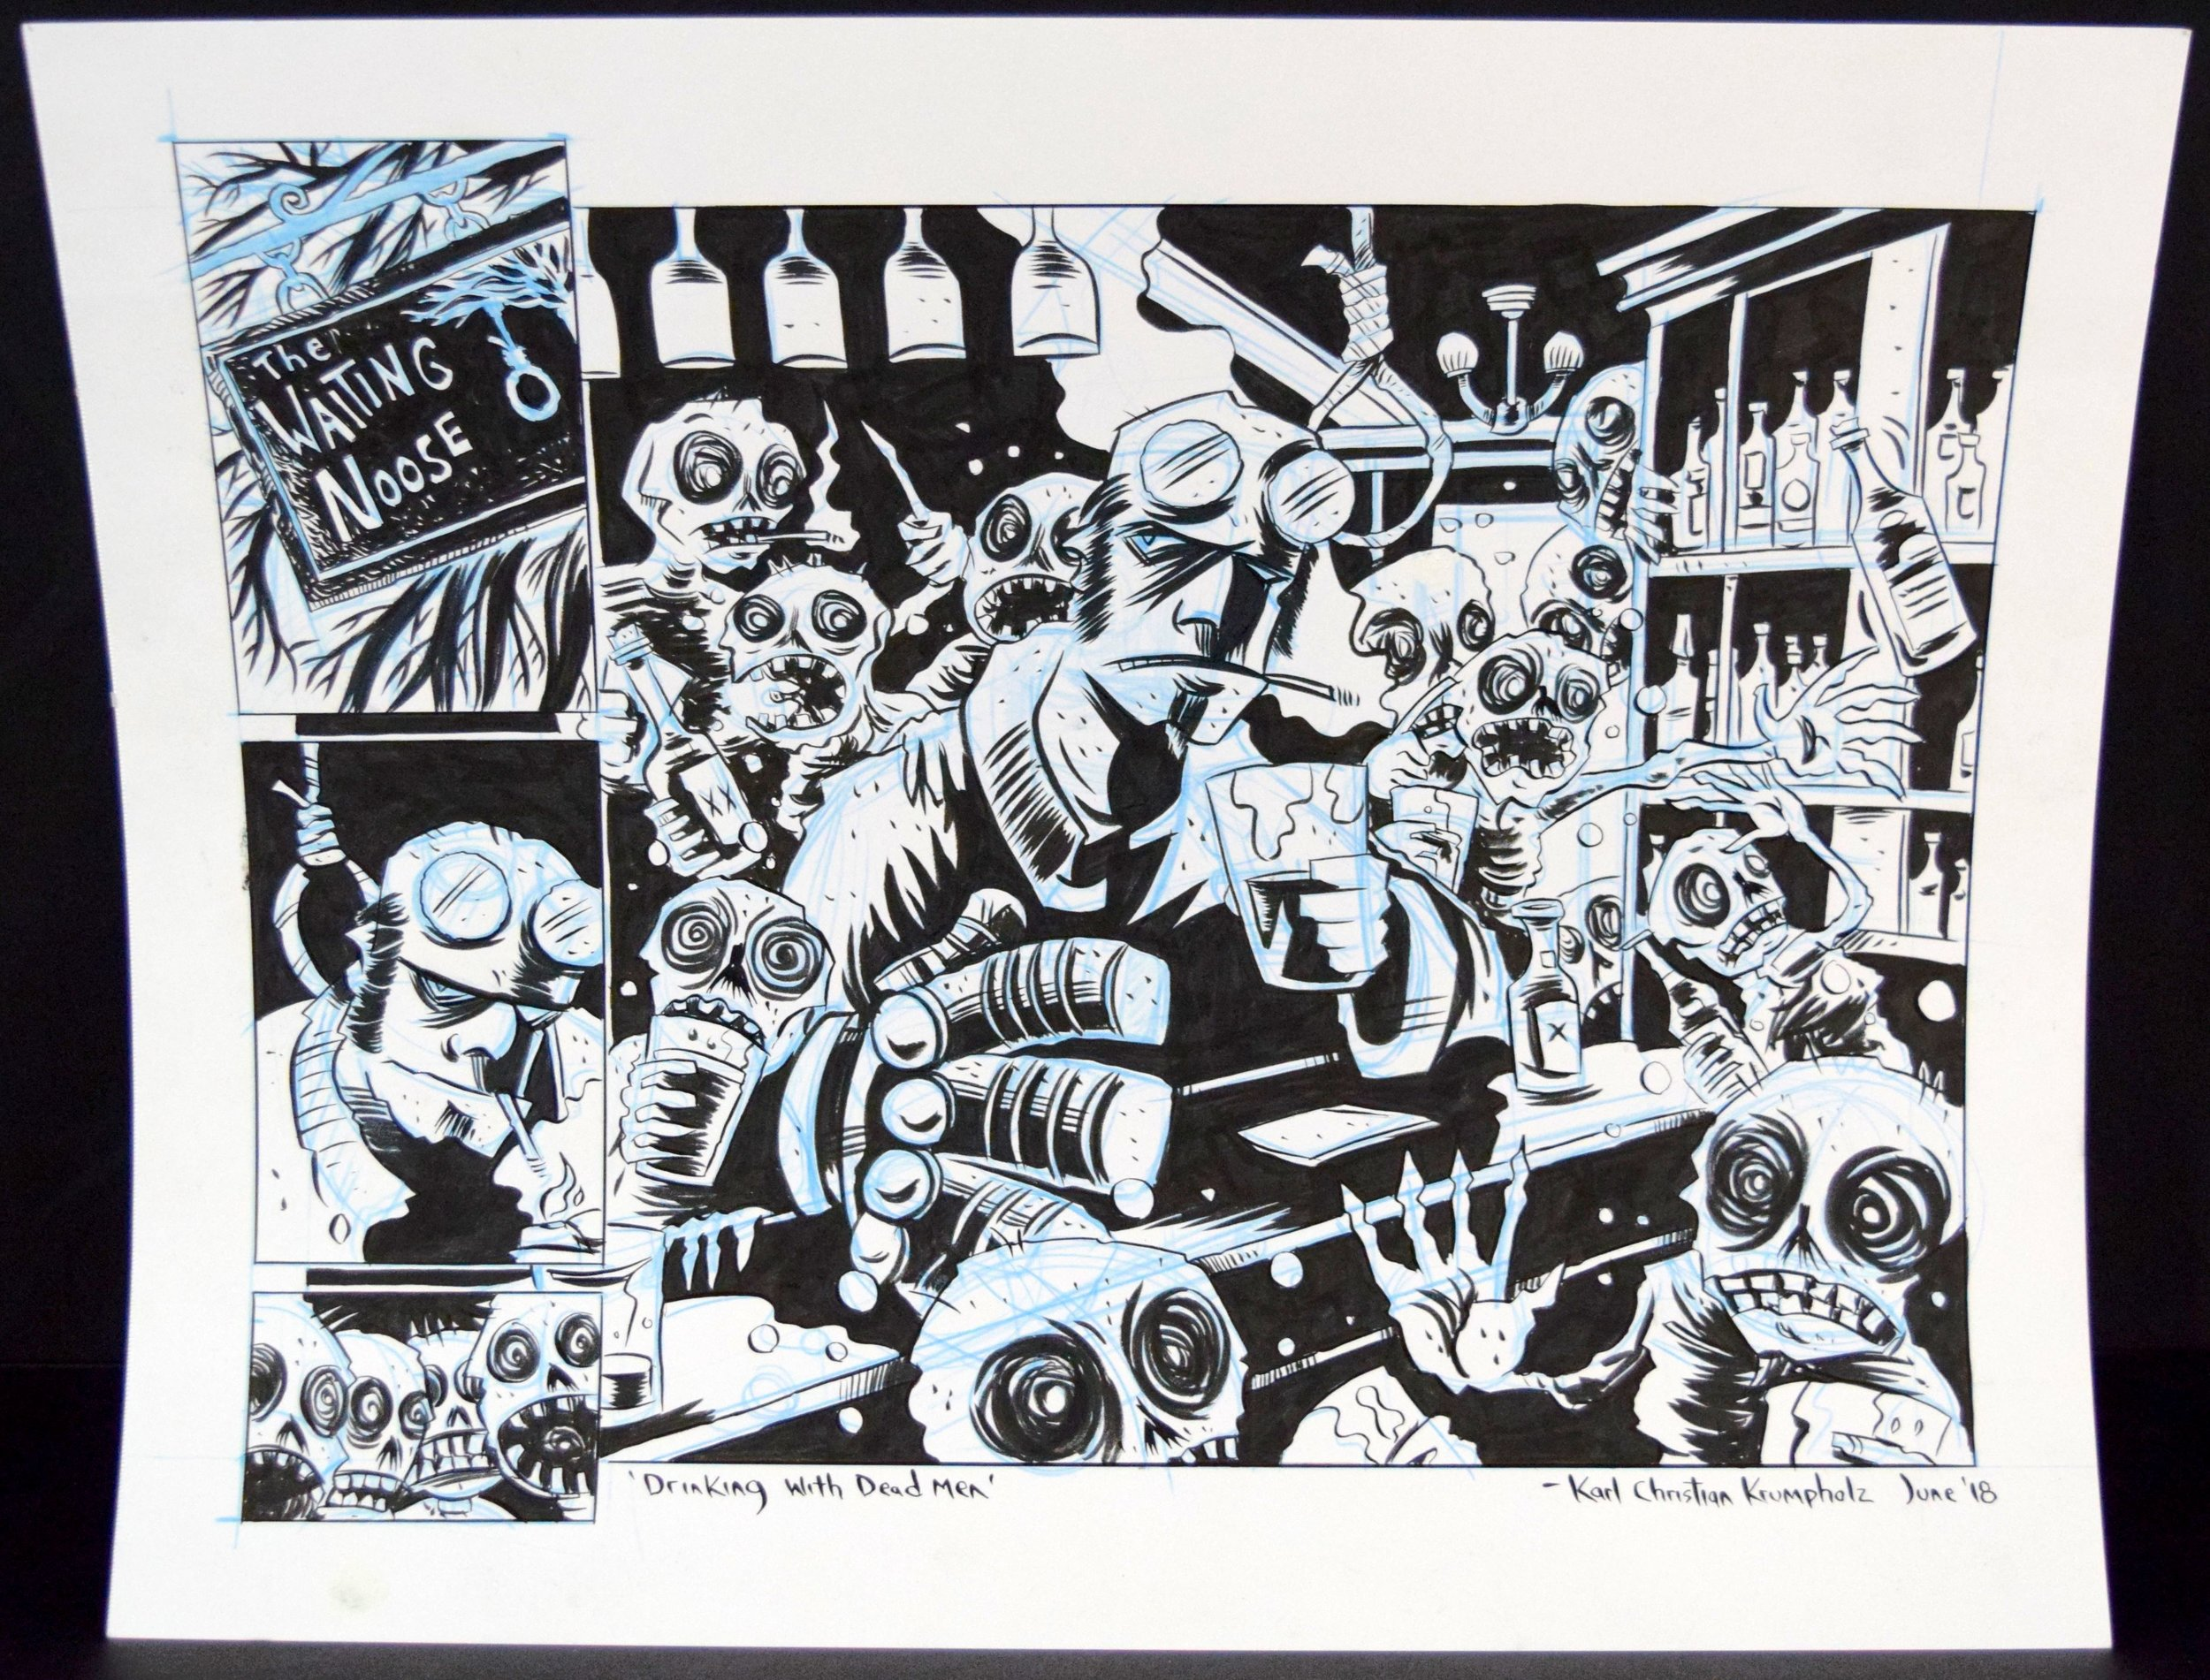 A  Hellboy  commission done by  Karl Christian Krumpholz .